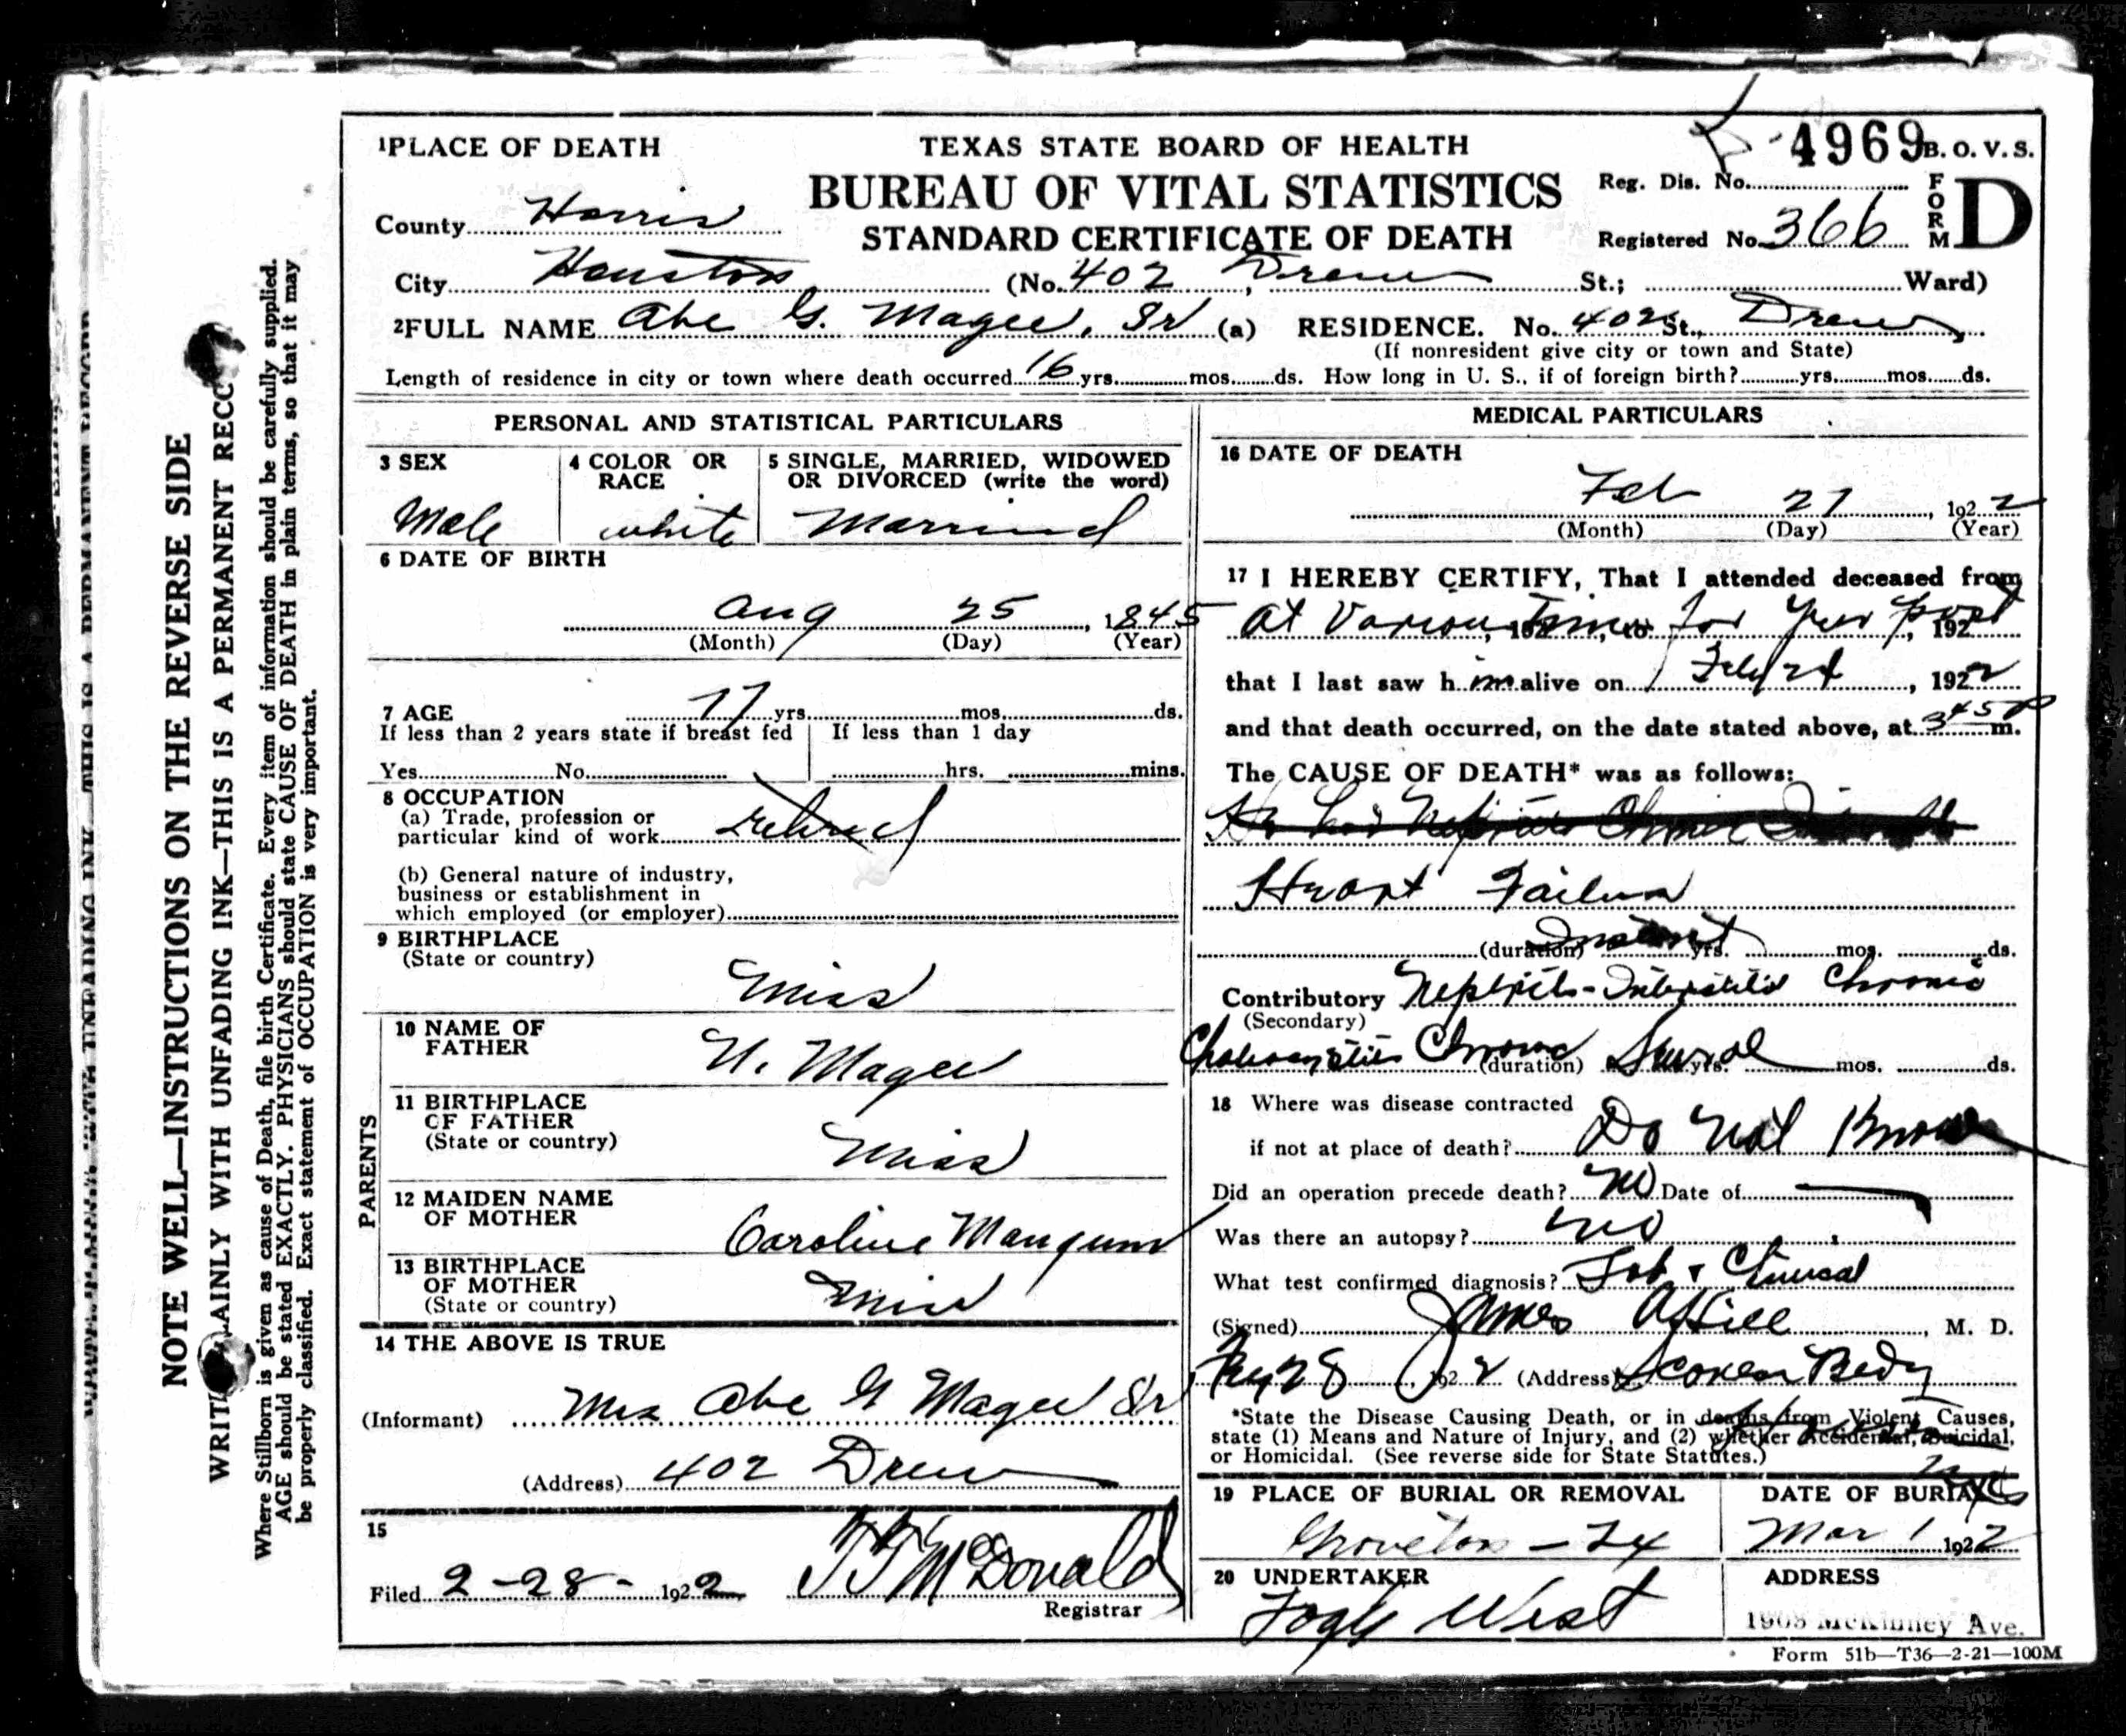 Abe Magee Texas Death Certificate